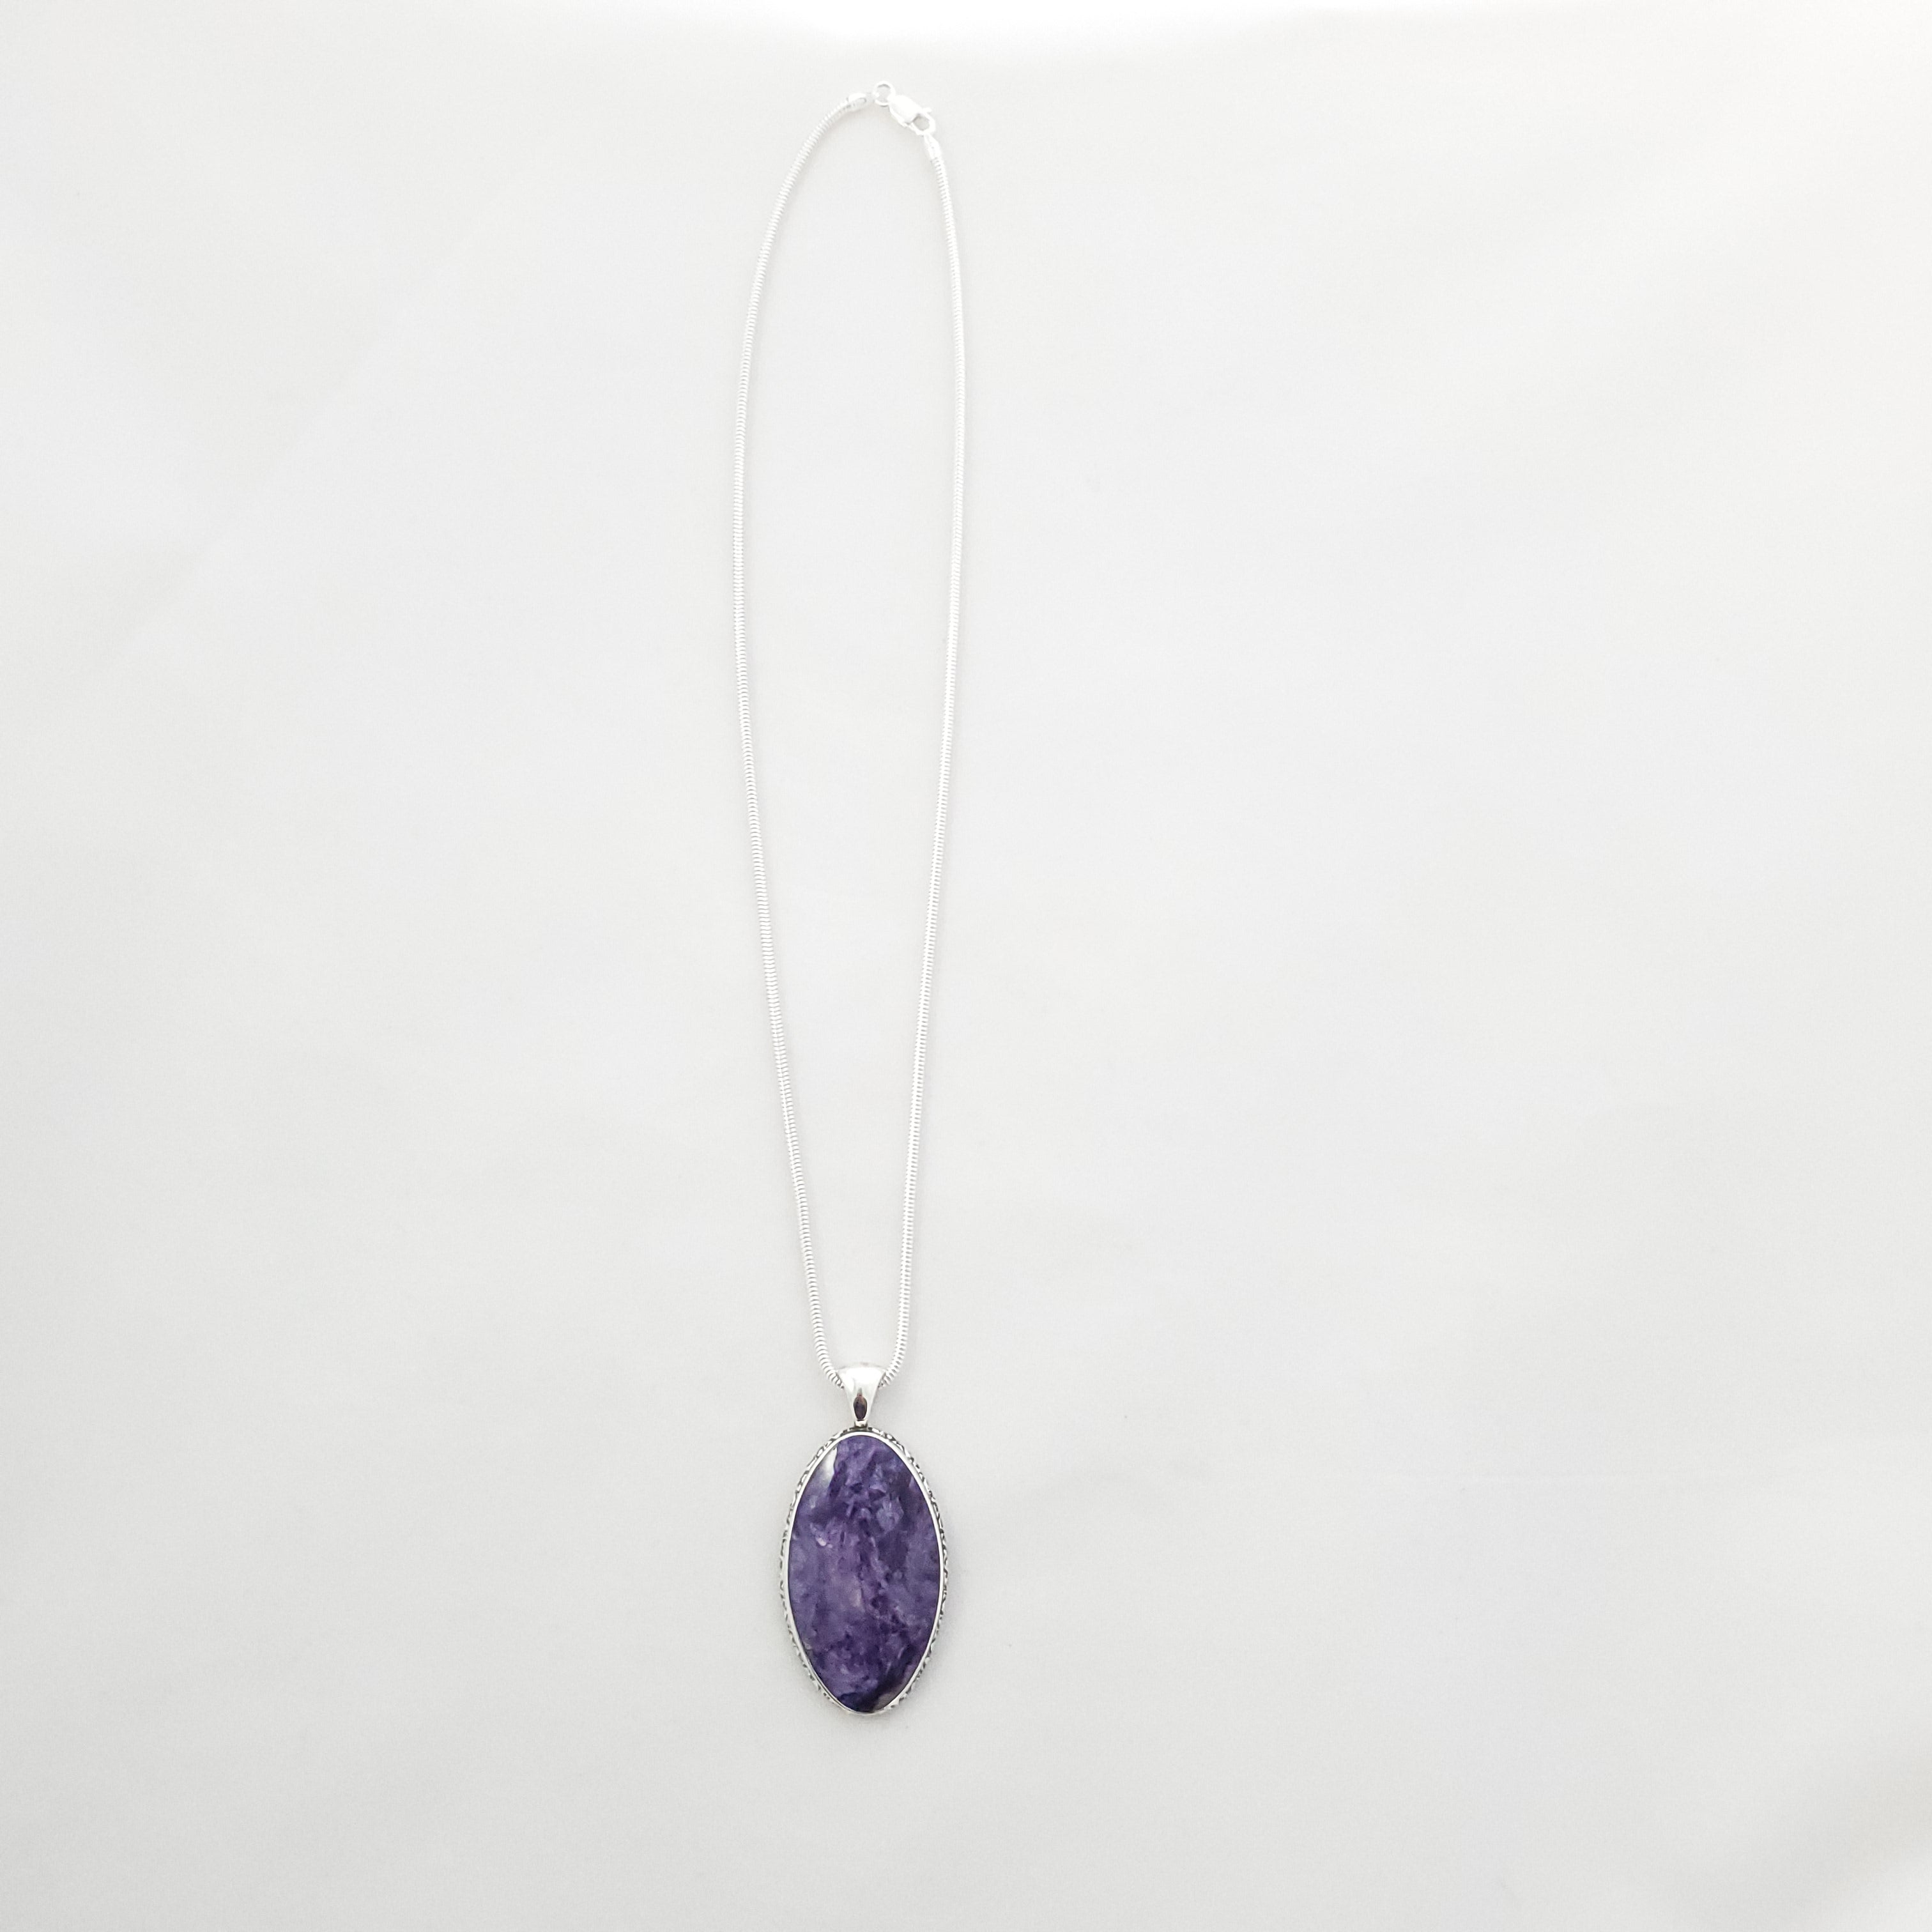 Large purple Charoite pendant on snake chain - face on view.